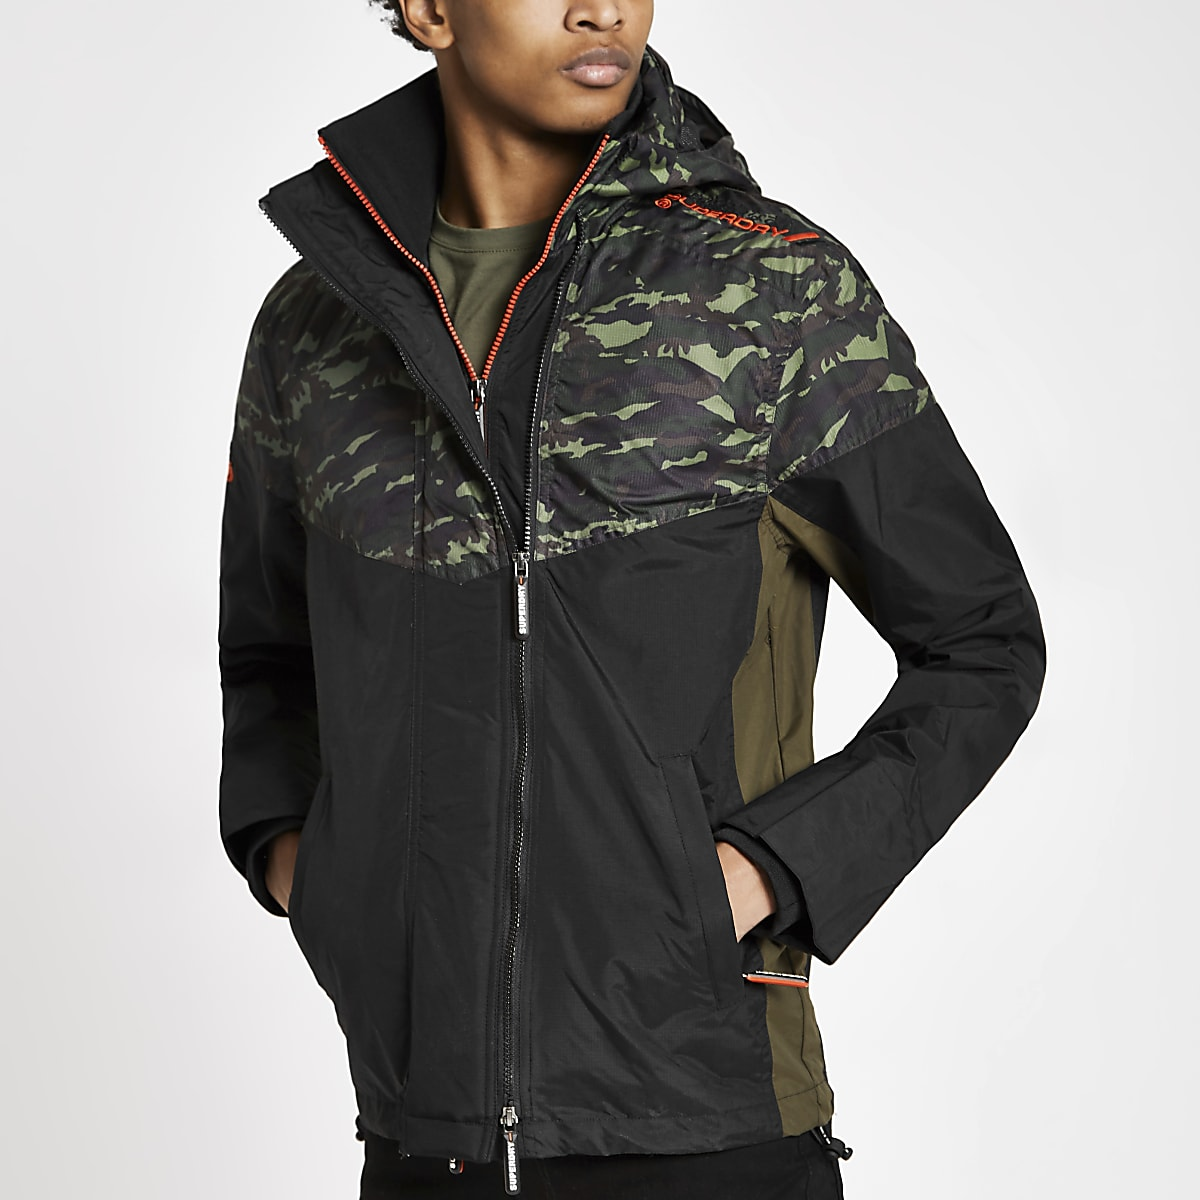 lowest price fb0f1 250d4 Superdry khaki camo hooded zip-up jacket